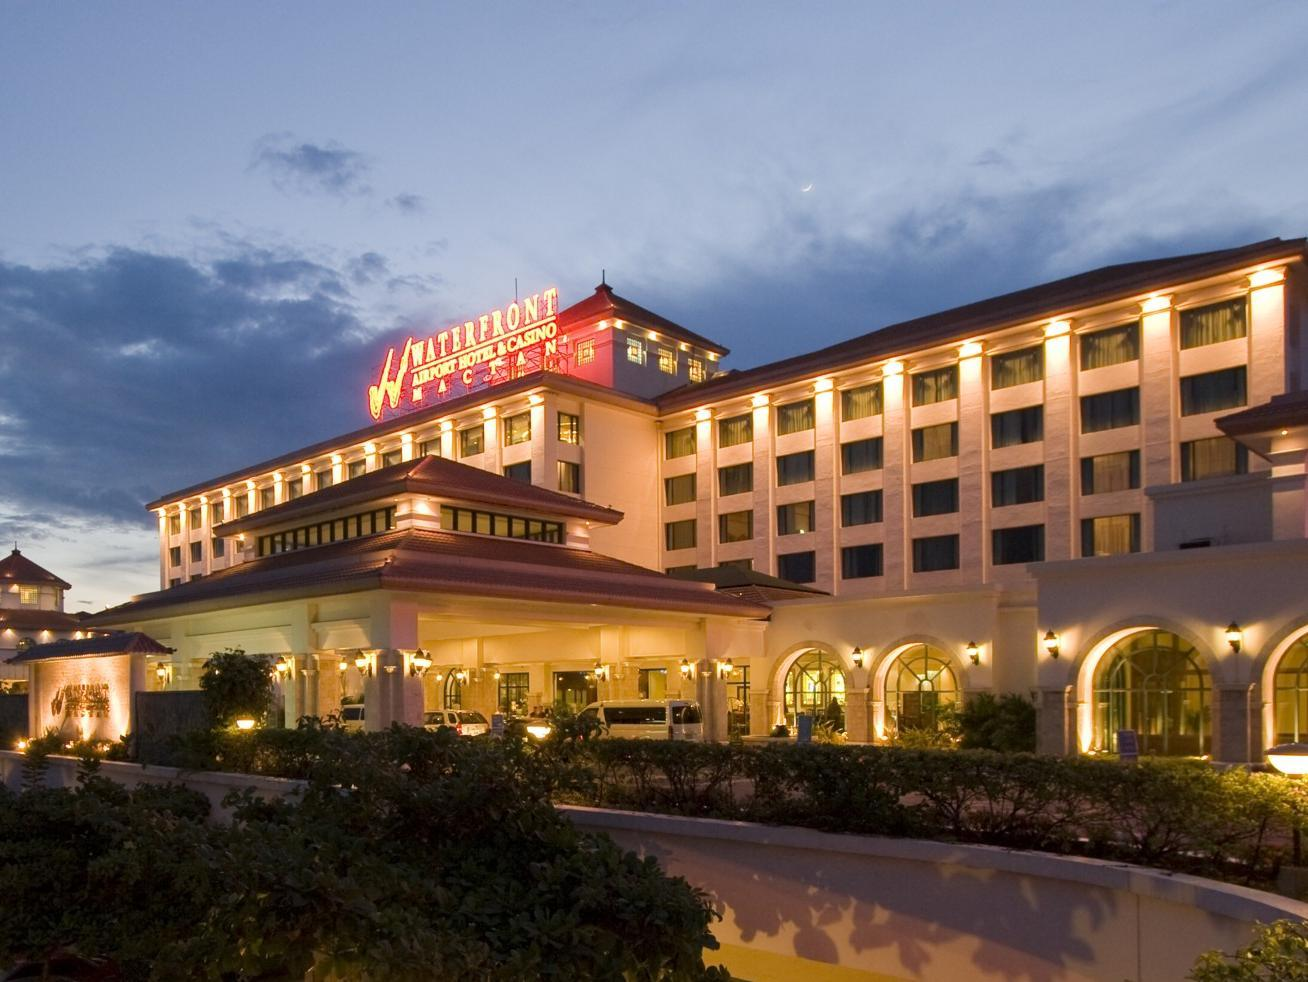 Waterfront Airport Hotel and Casino Cebu City - Hotellet från utsidan